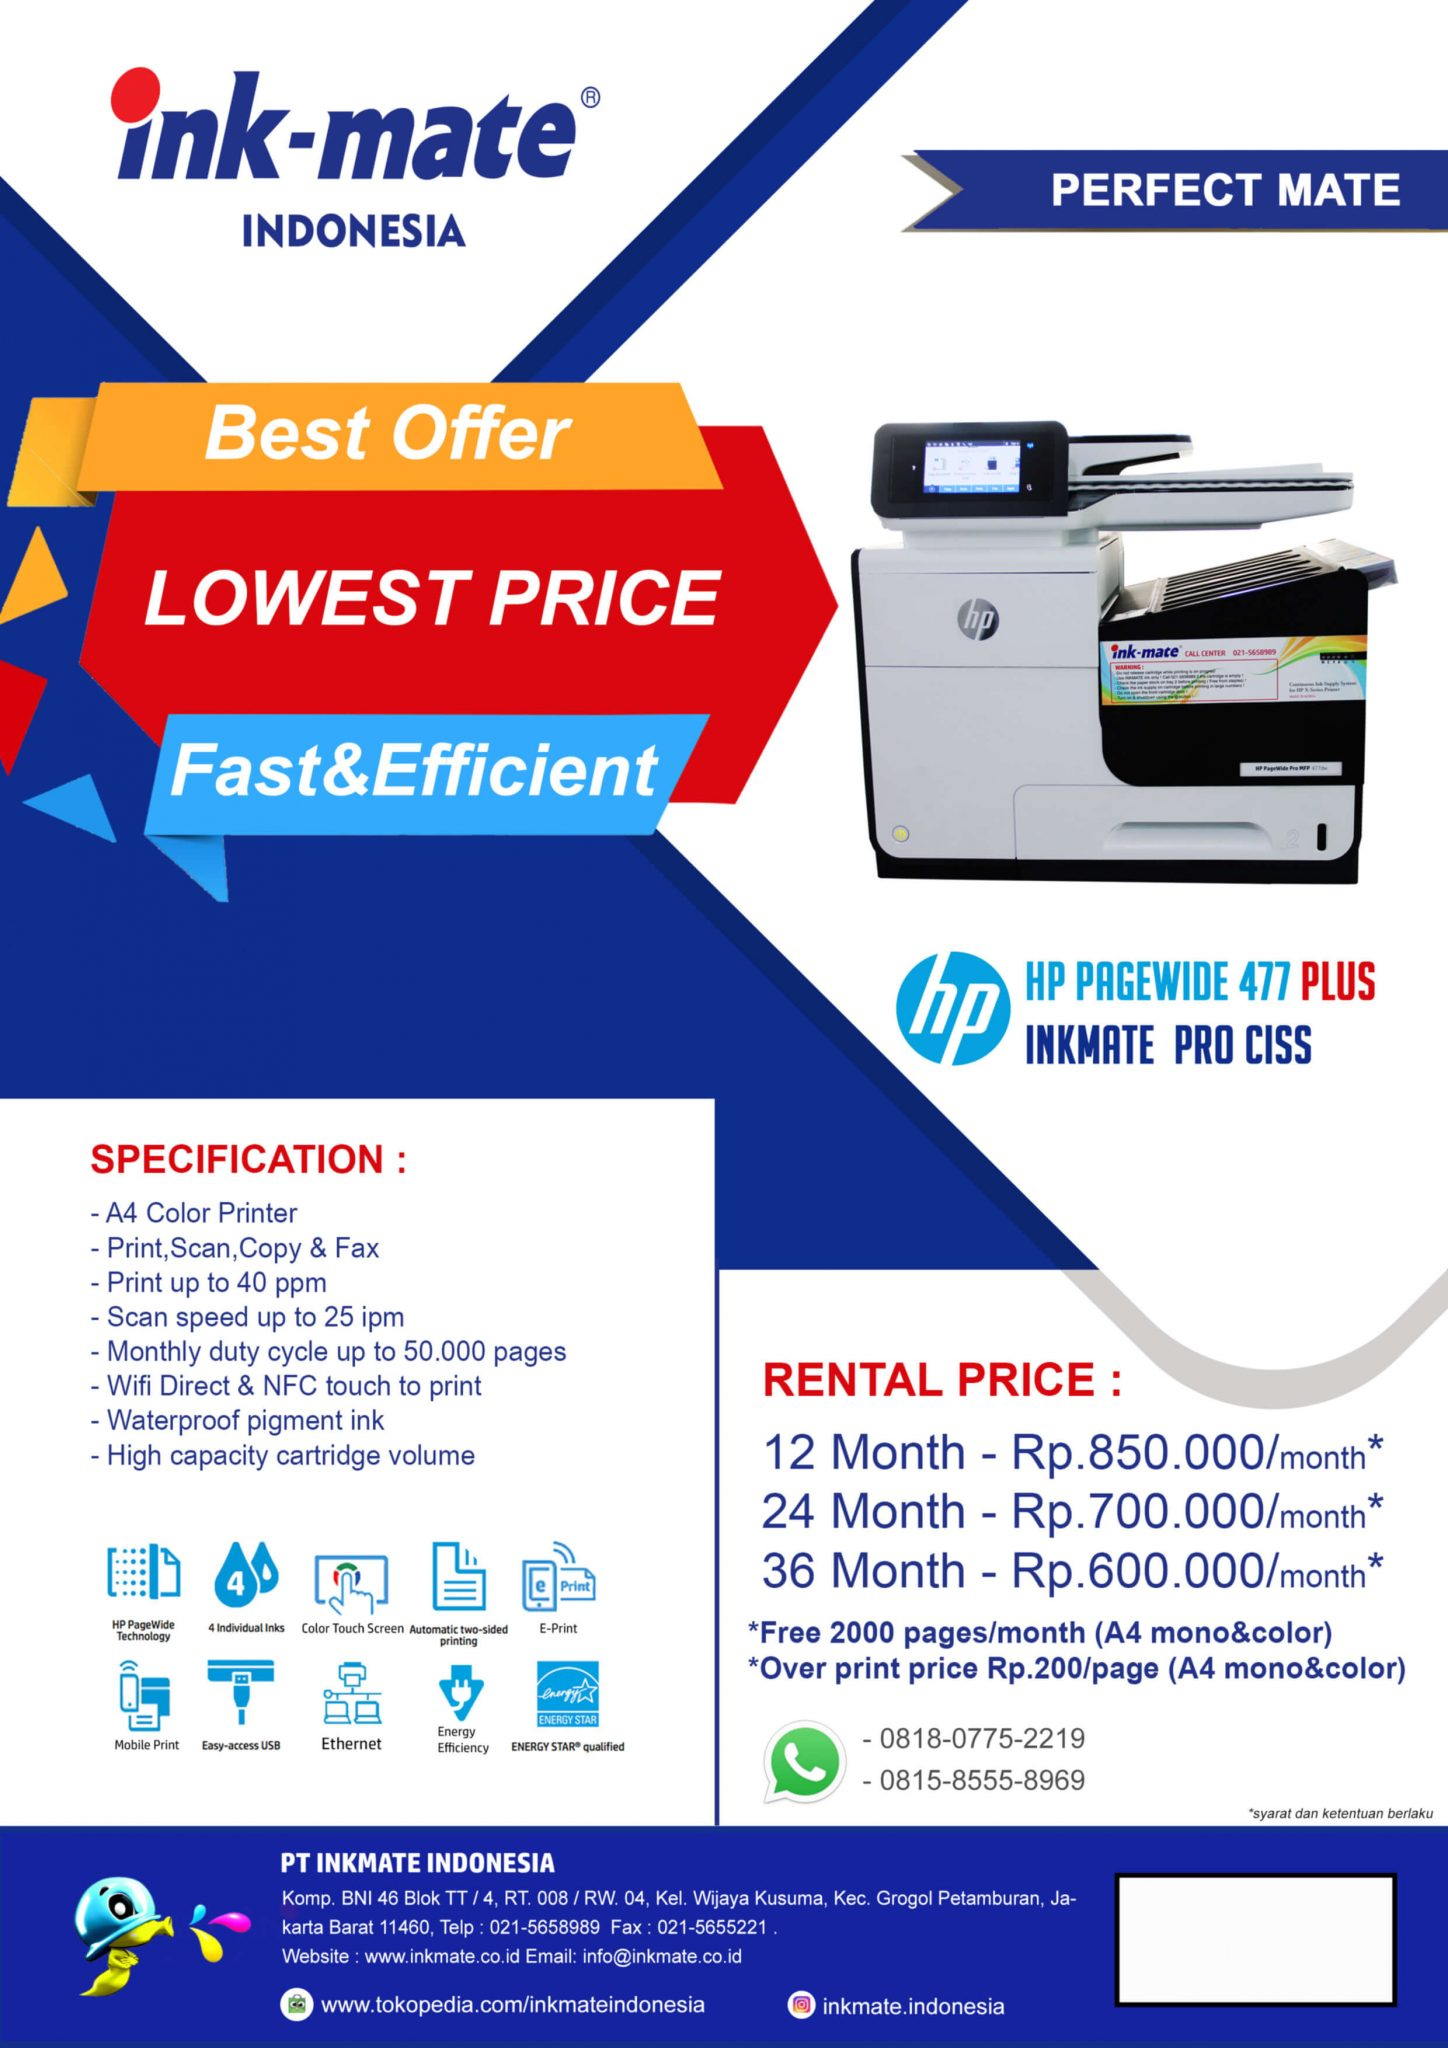 promo HP page wide